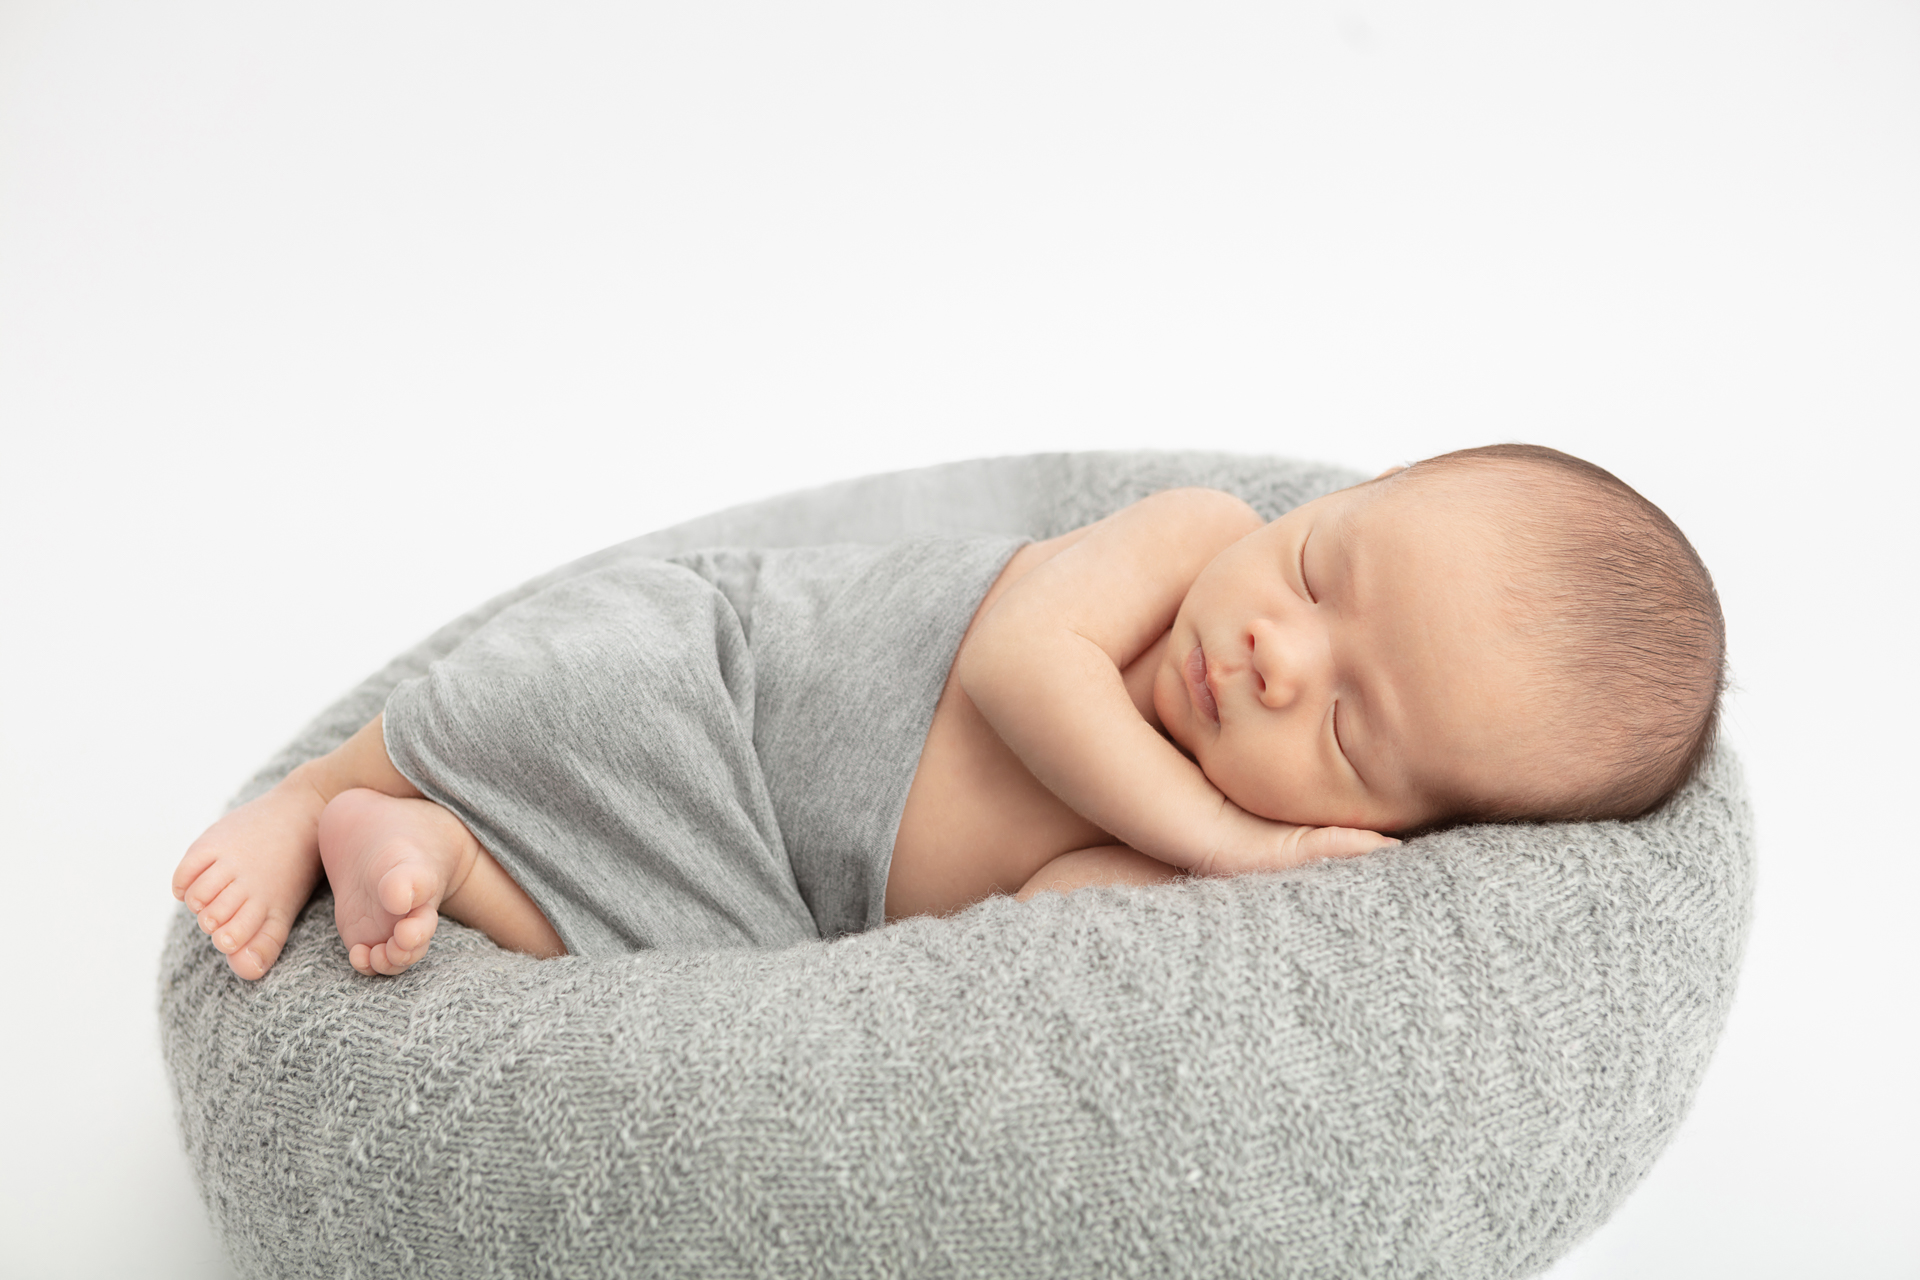 newborn baby boy wrapped in a gray heather swaddle and lying on a gray knit pouf